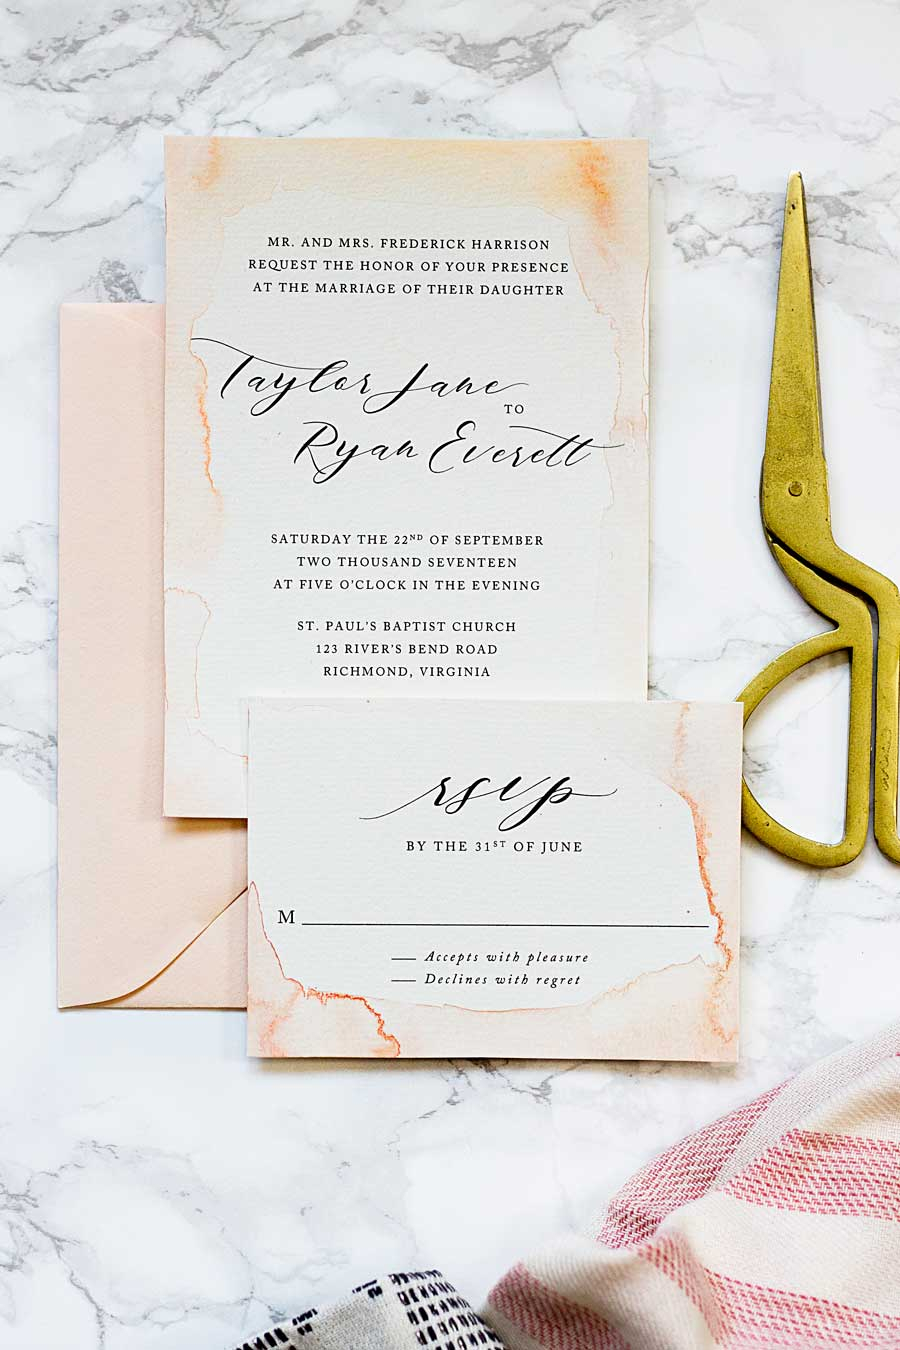 Making Your Own Wedding Invitations Subtle Watercolor Wedding Invitations How To Make Your Own